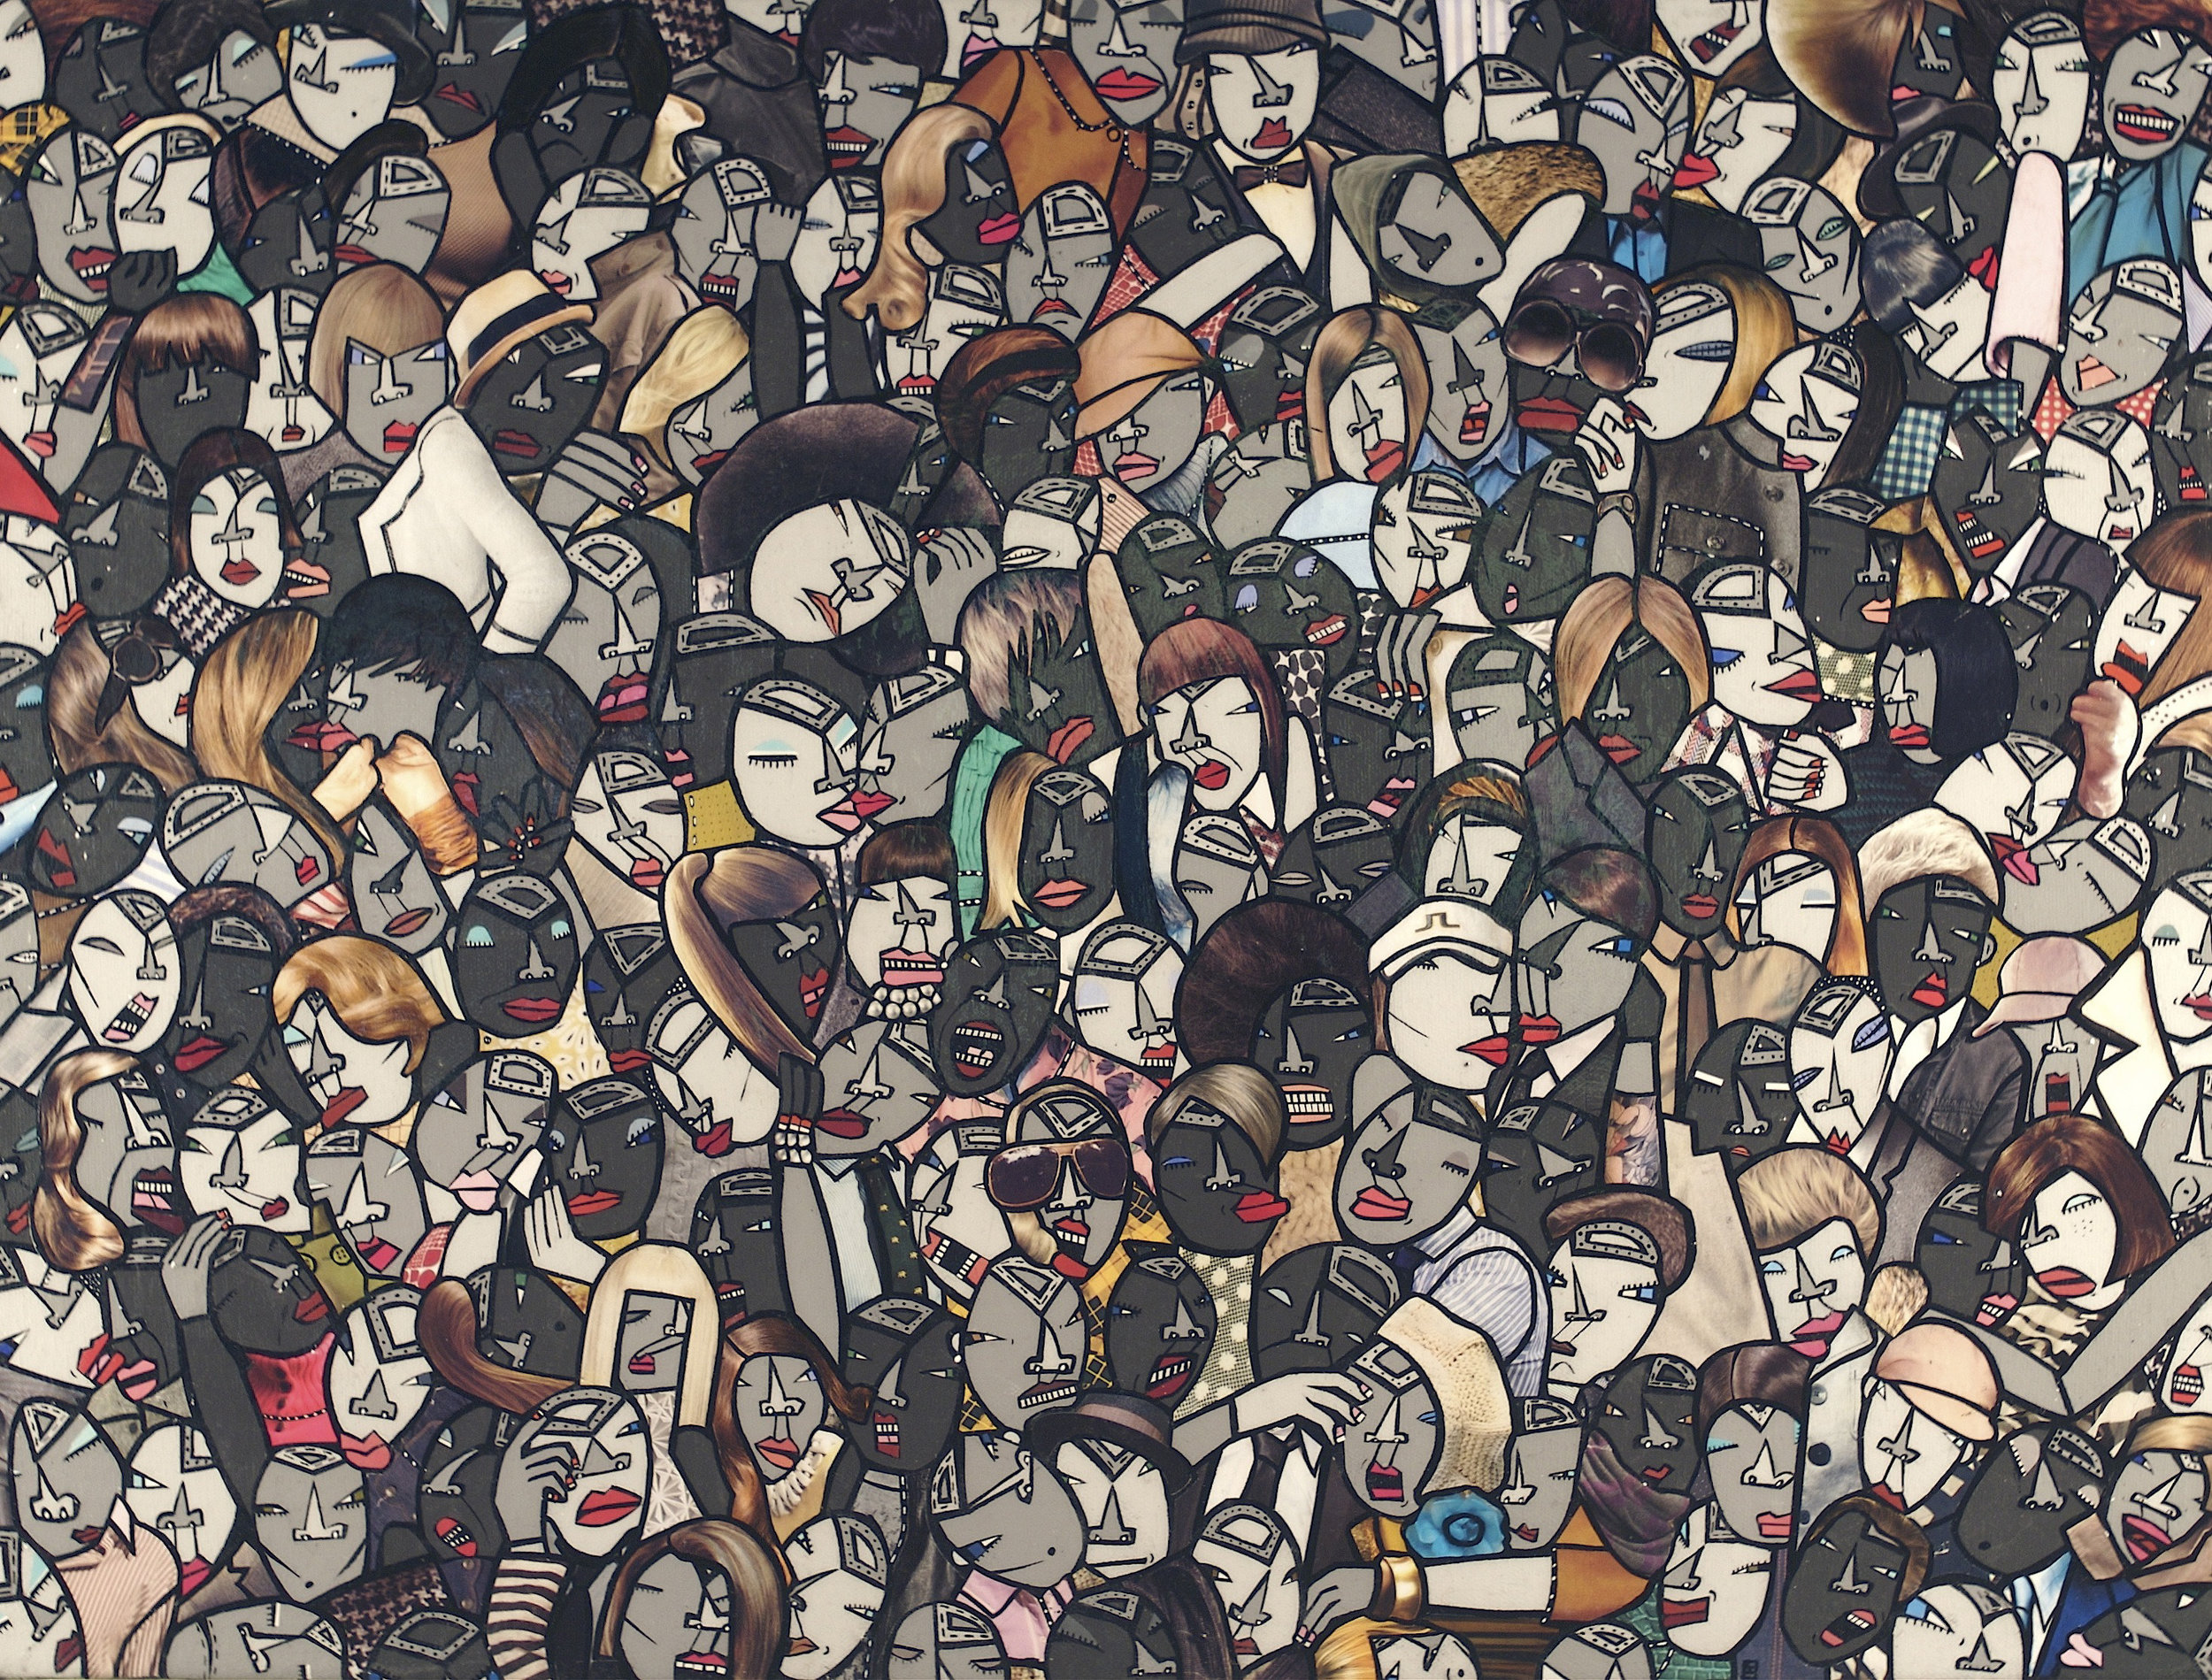 Face it! (part 1), acrylic and paper collage on canvas, 2009, private collection